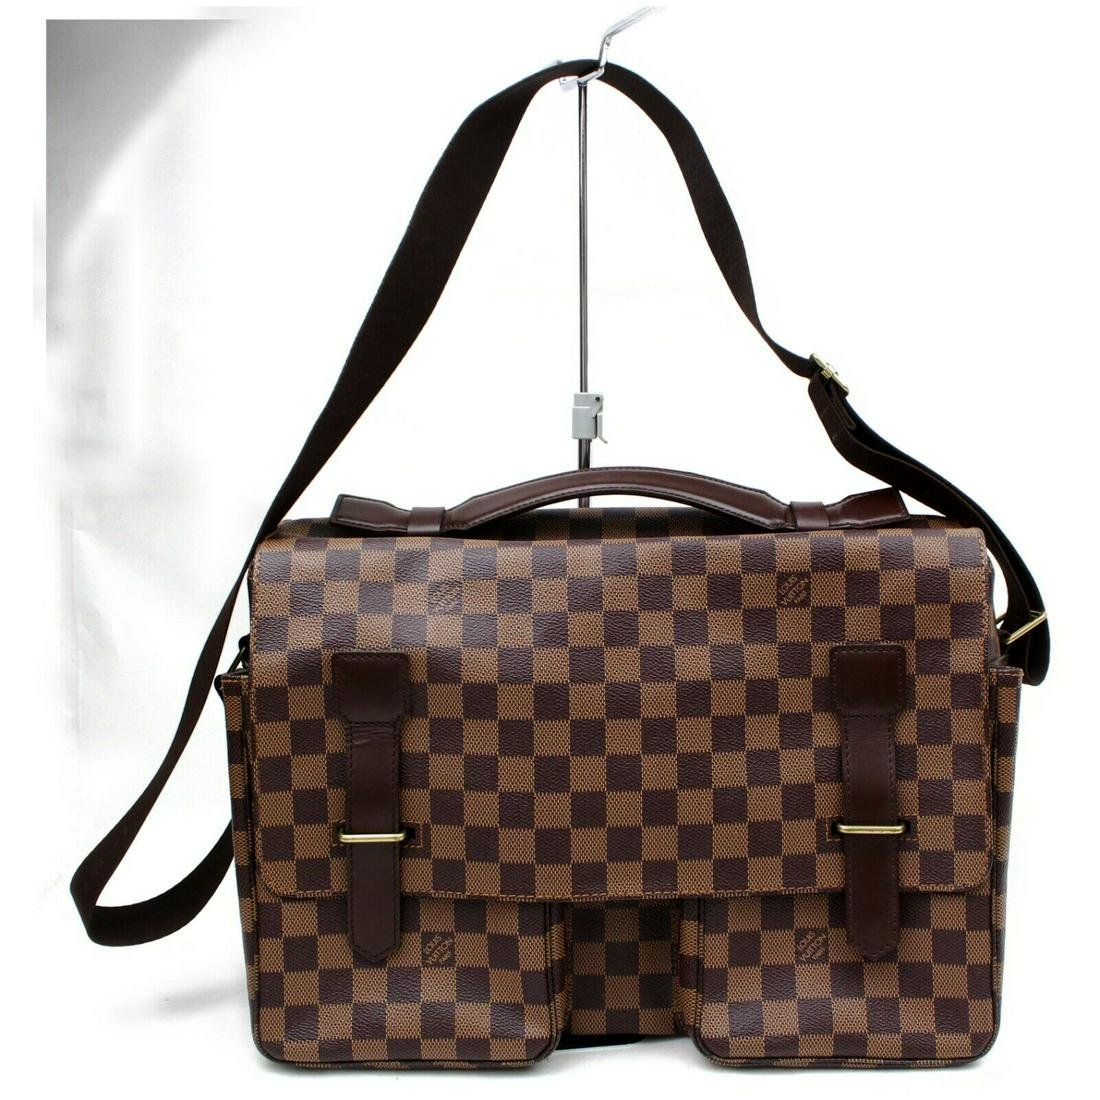 Authentic LOUIS VUITTON Damier Hand Bag